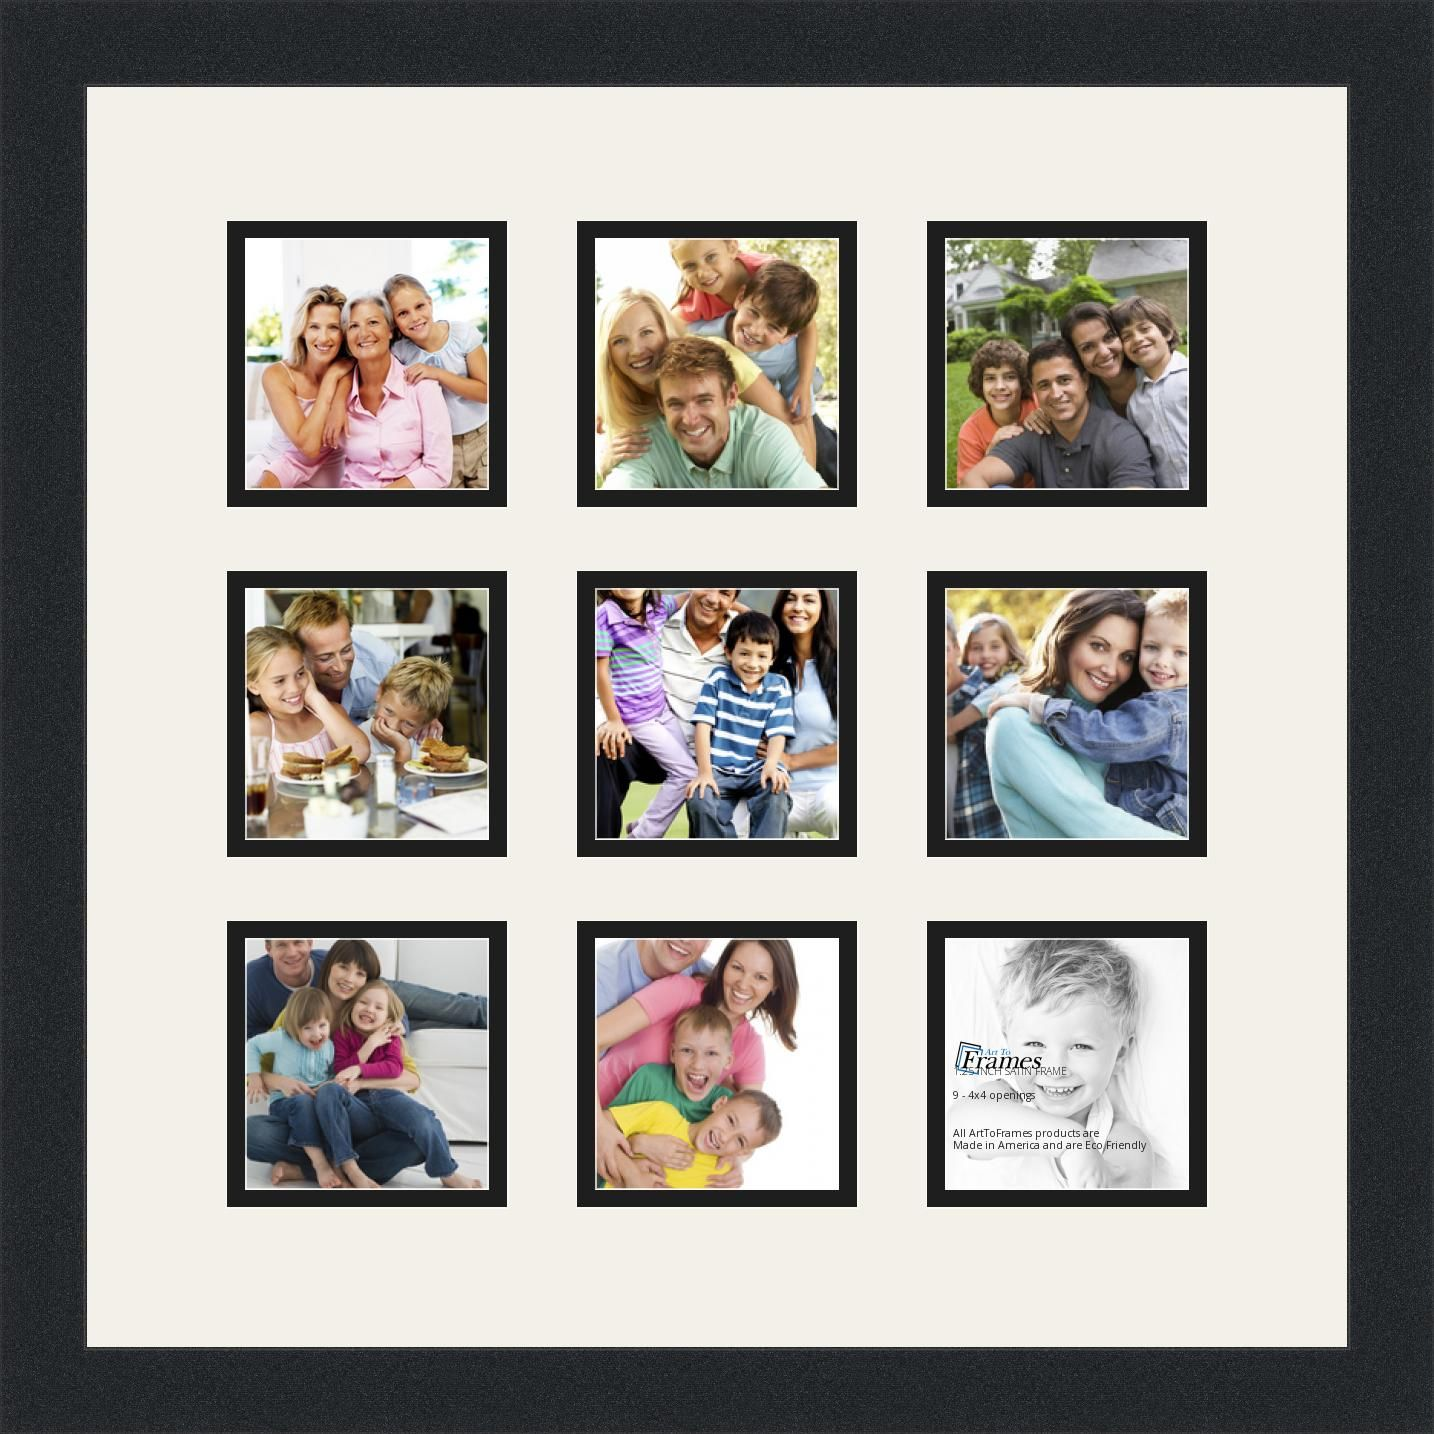 Satin Black Collage Picture Frame with 9 - 4x4 opening(s), Double Matted